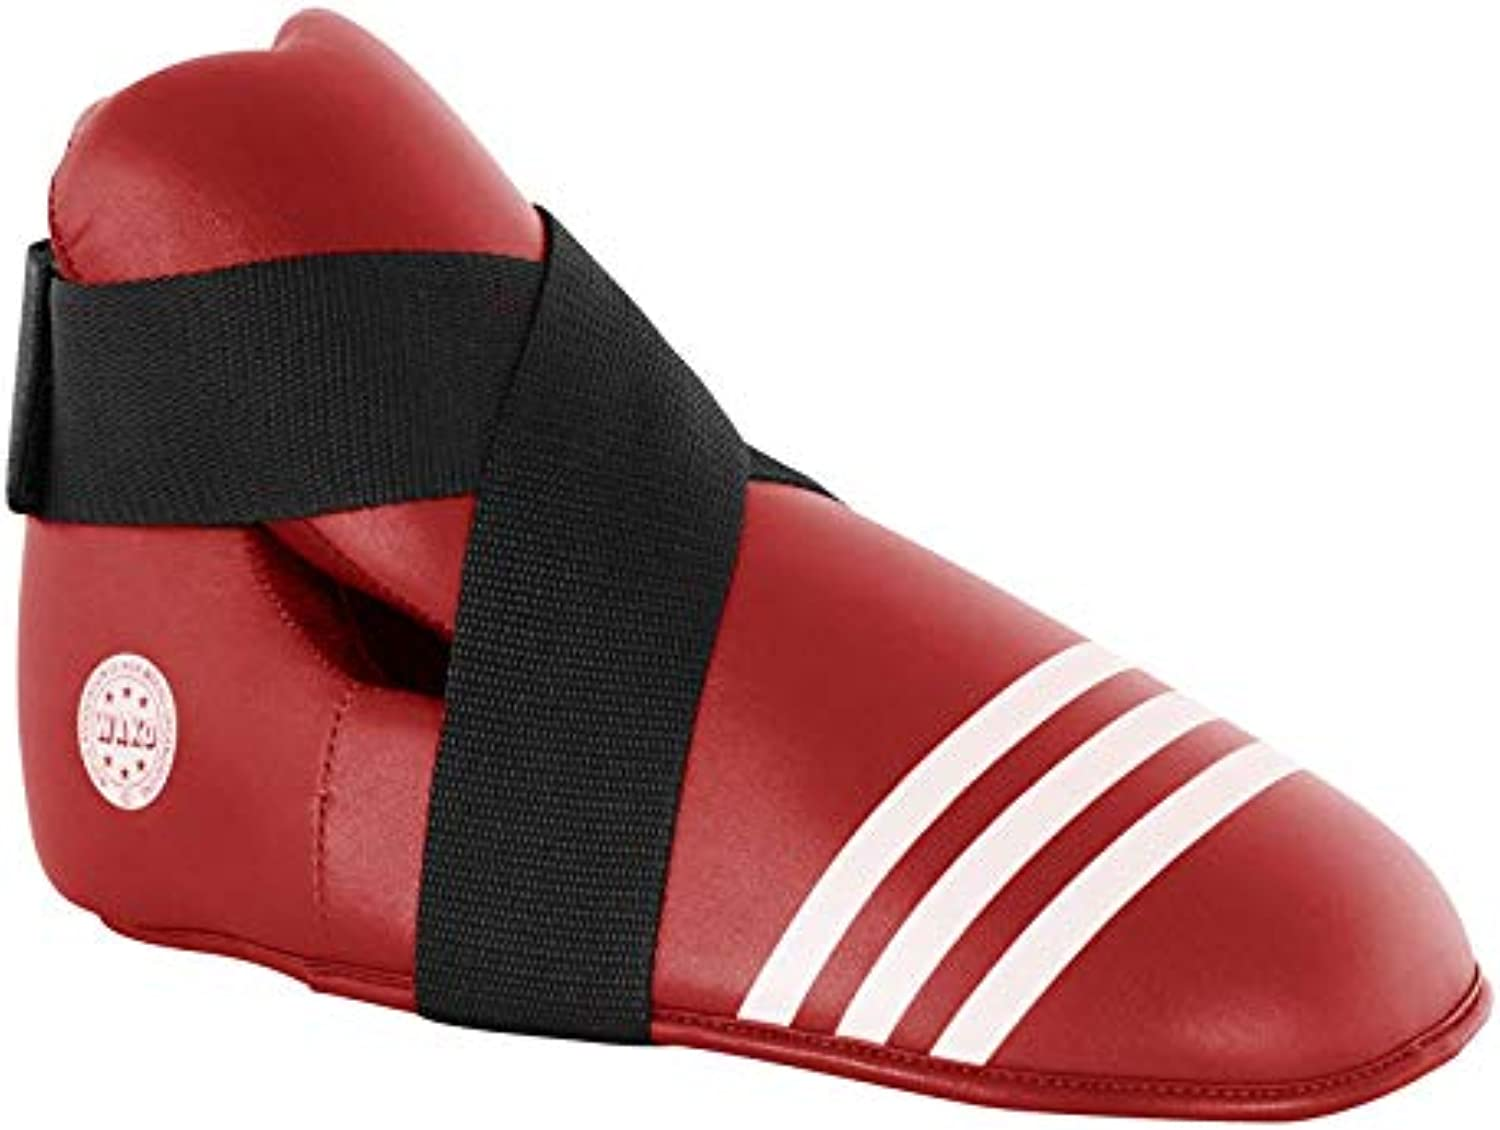 Adidas CALZARI NEW KICK PRO WAKO IN PU